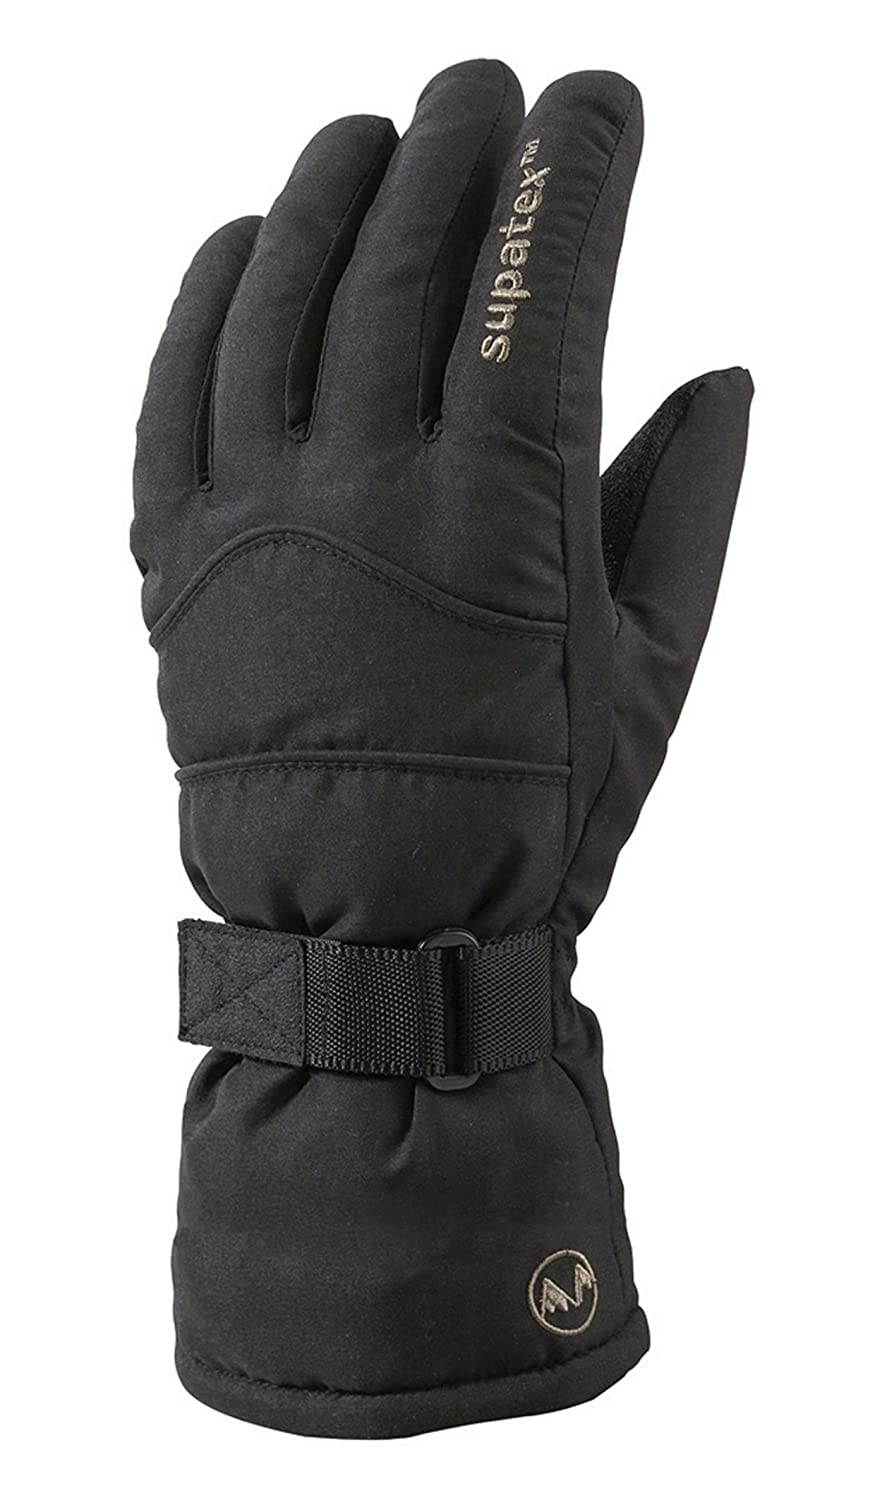 Extra small ladies leather gloves uk - Manbi Womens Carve Ski Gloves